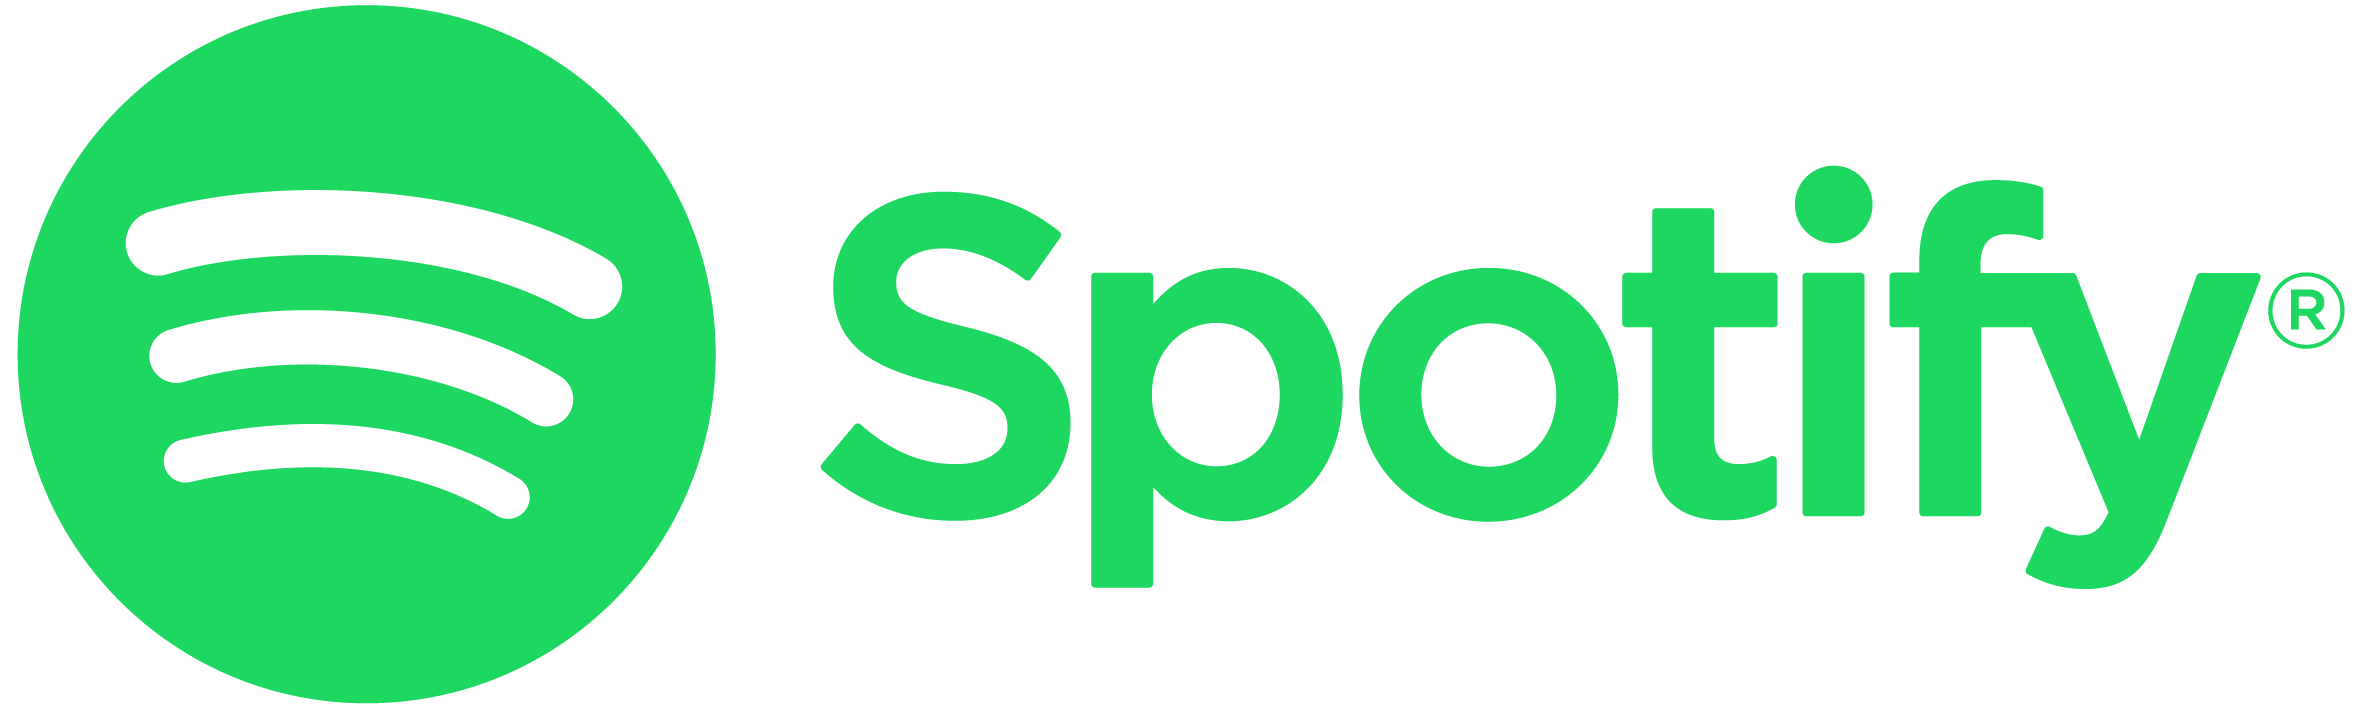 Spotify Premium - 3 Months for $9.99 (total) for previous Premium customers